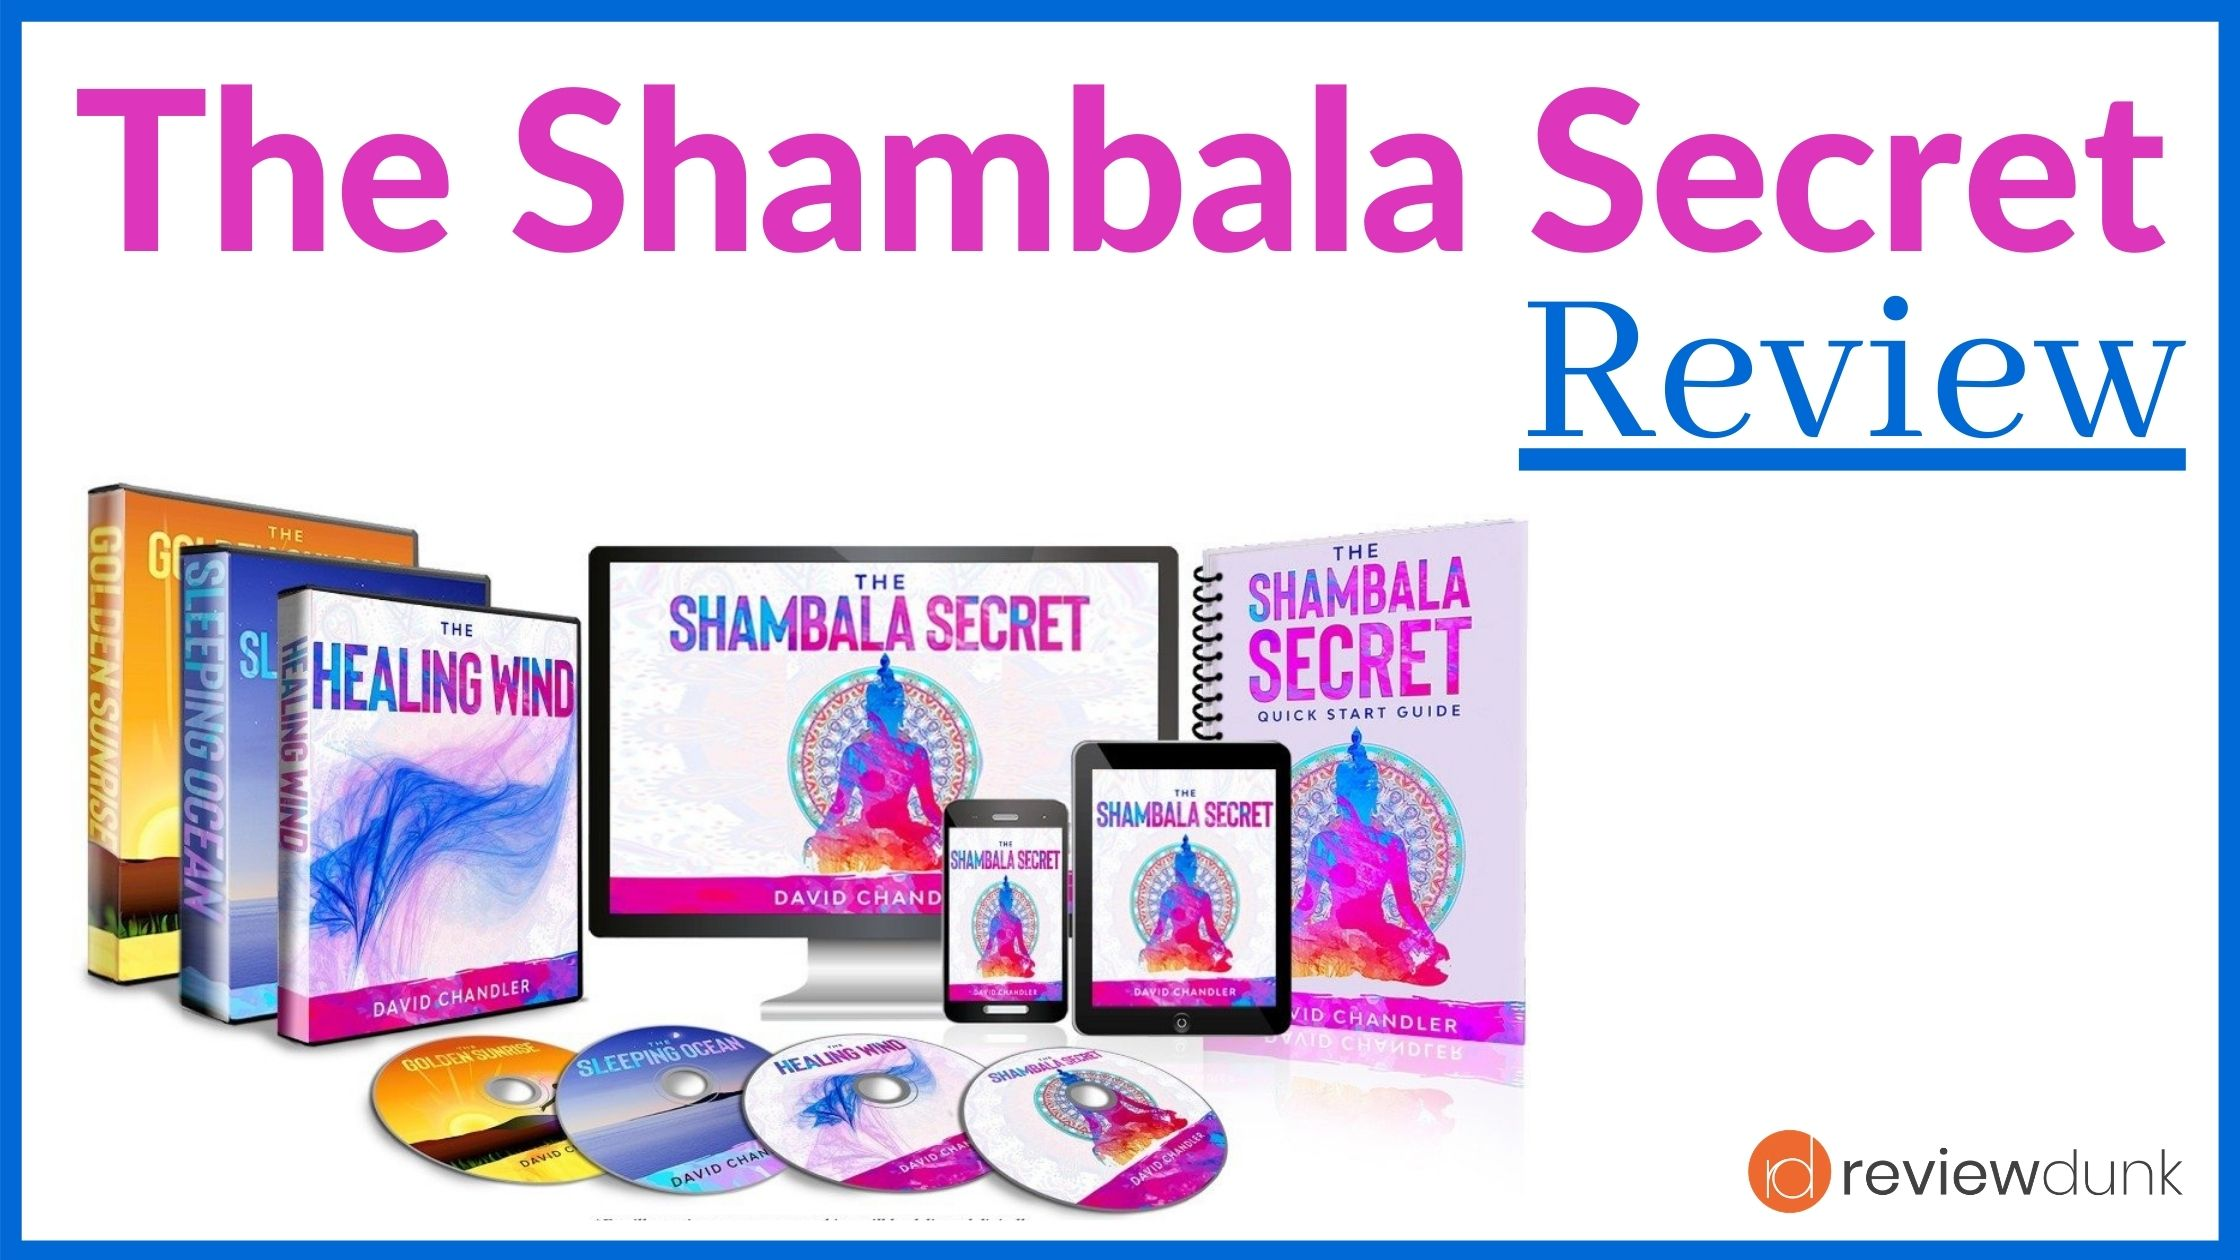 Shambala Secret Review - Absurd or Legit? [My Experiences & Results]